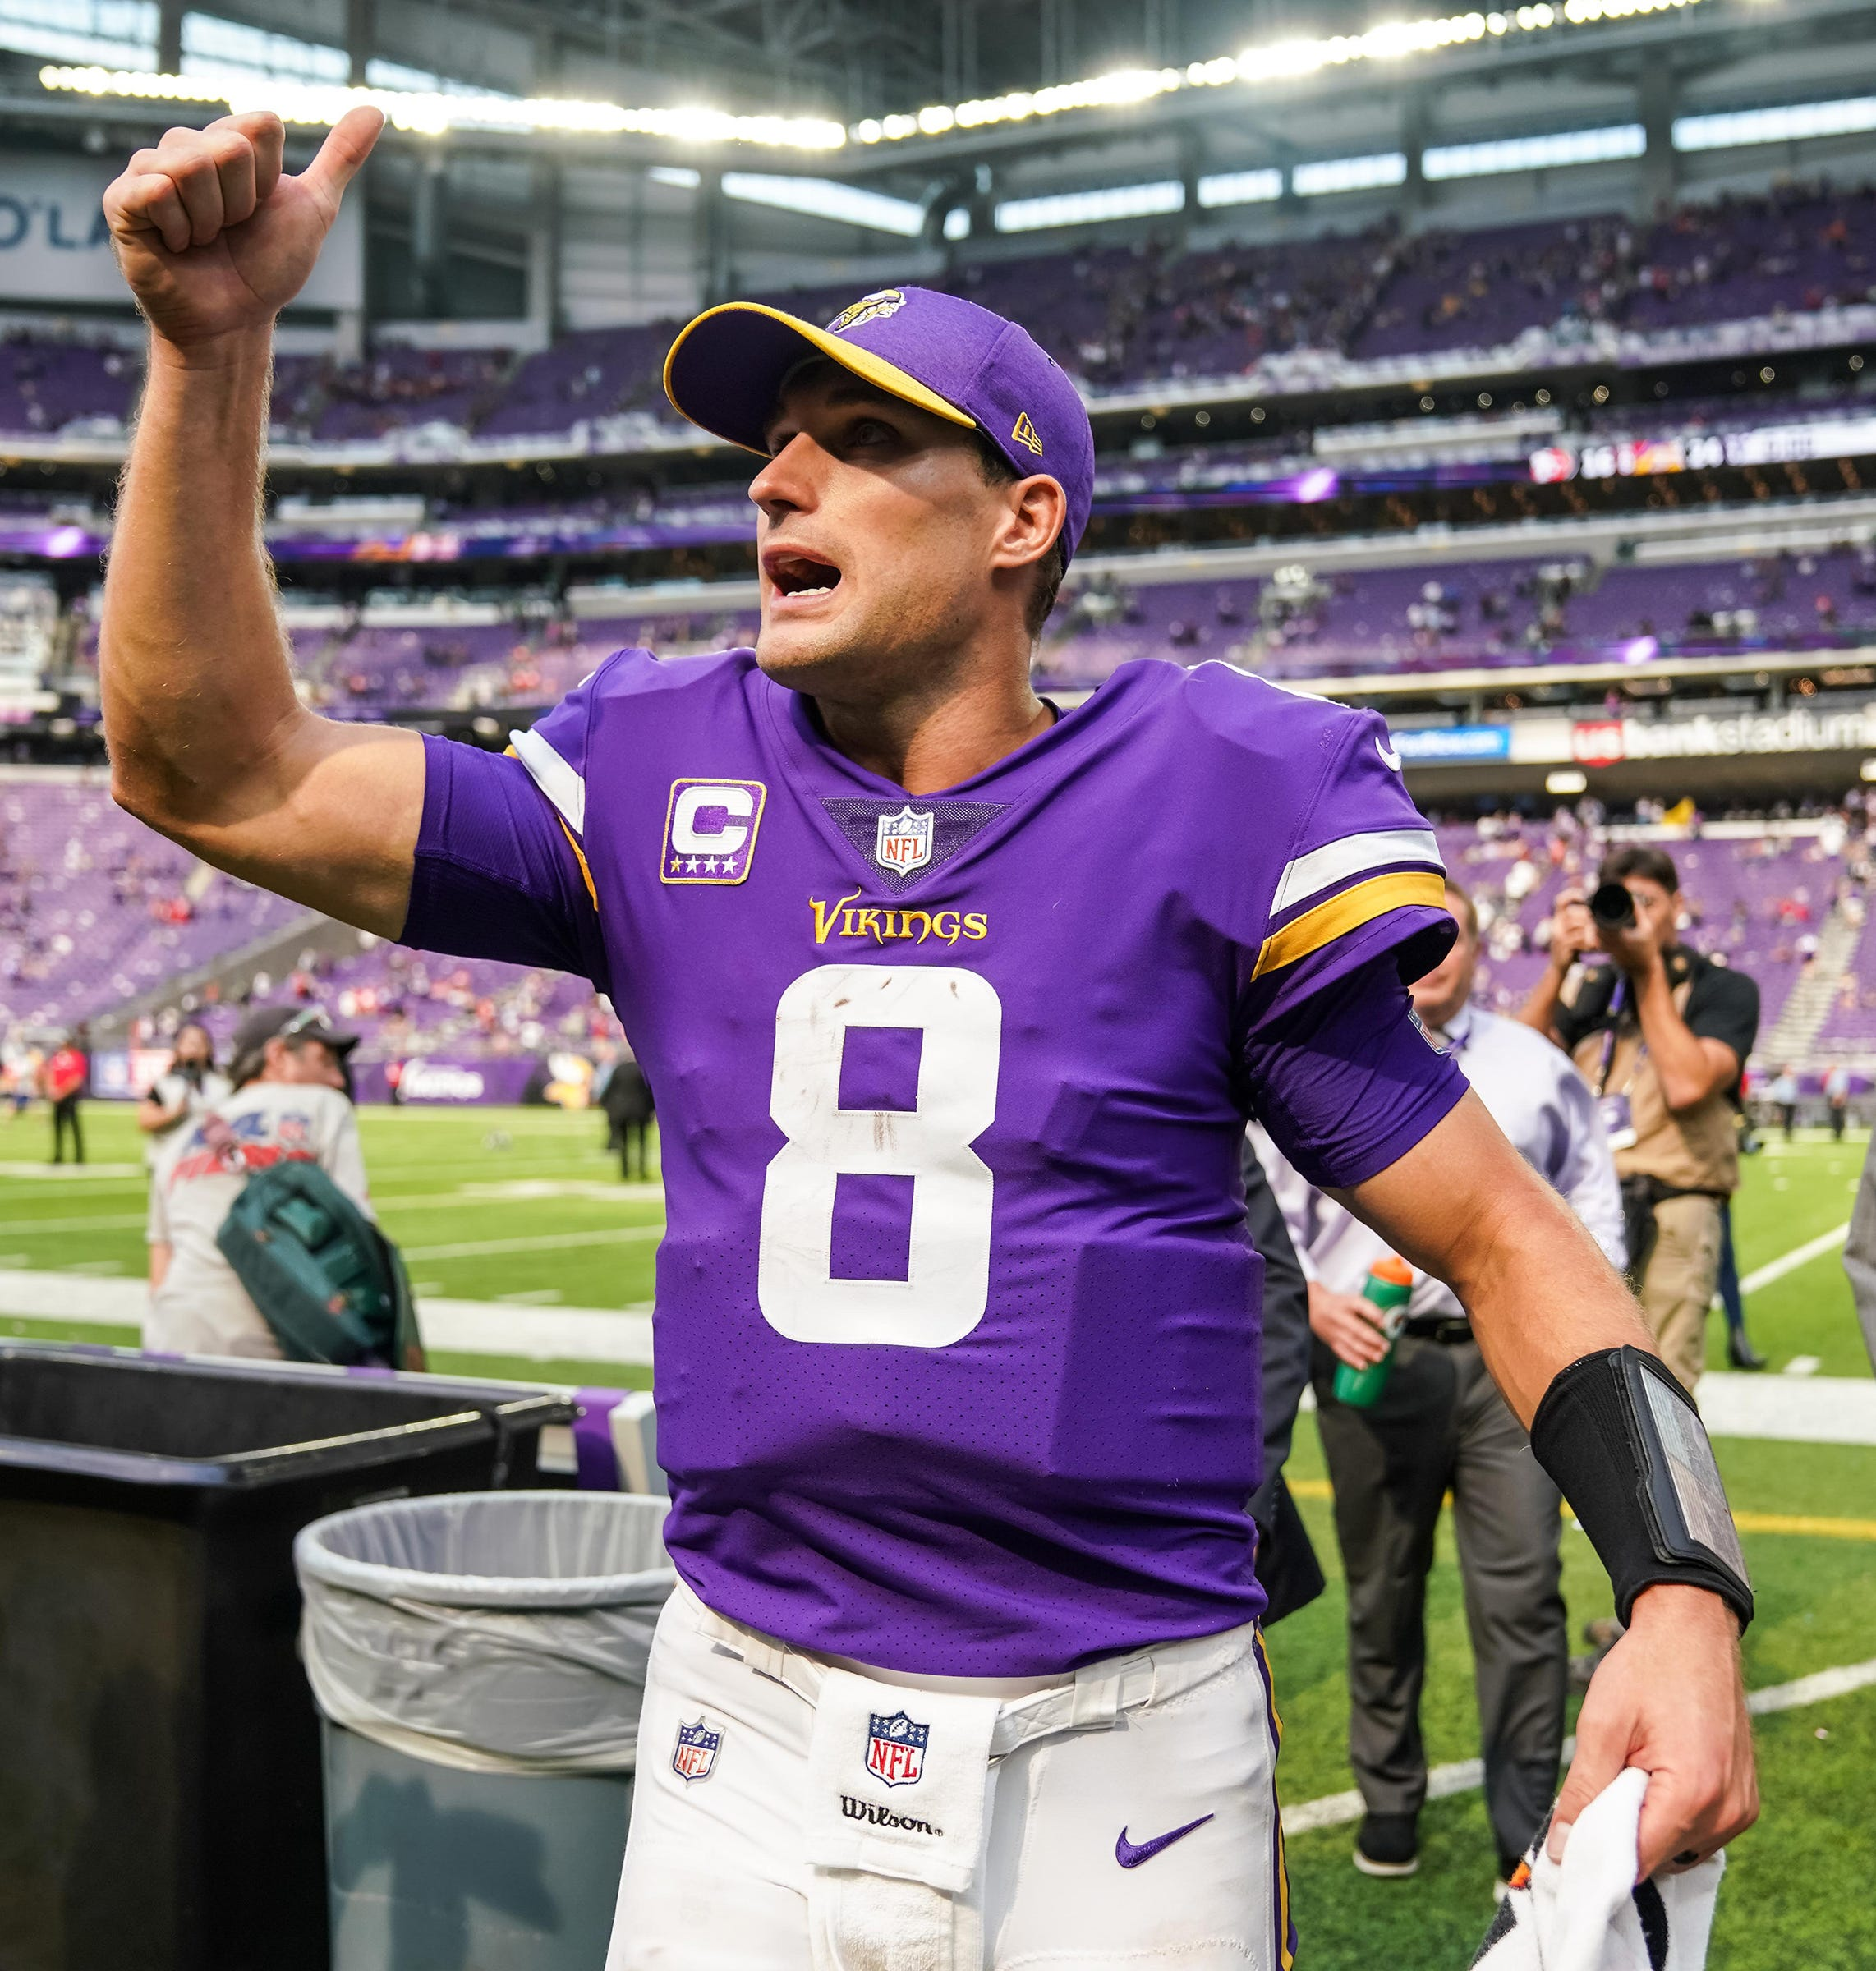 Nfl San Francisco 49ers At Minnesota Vikings